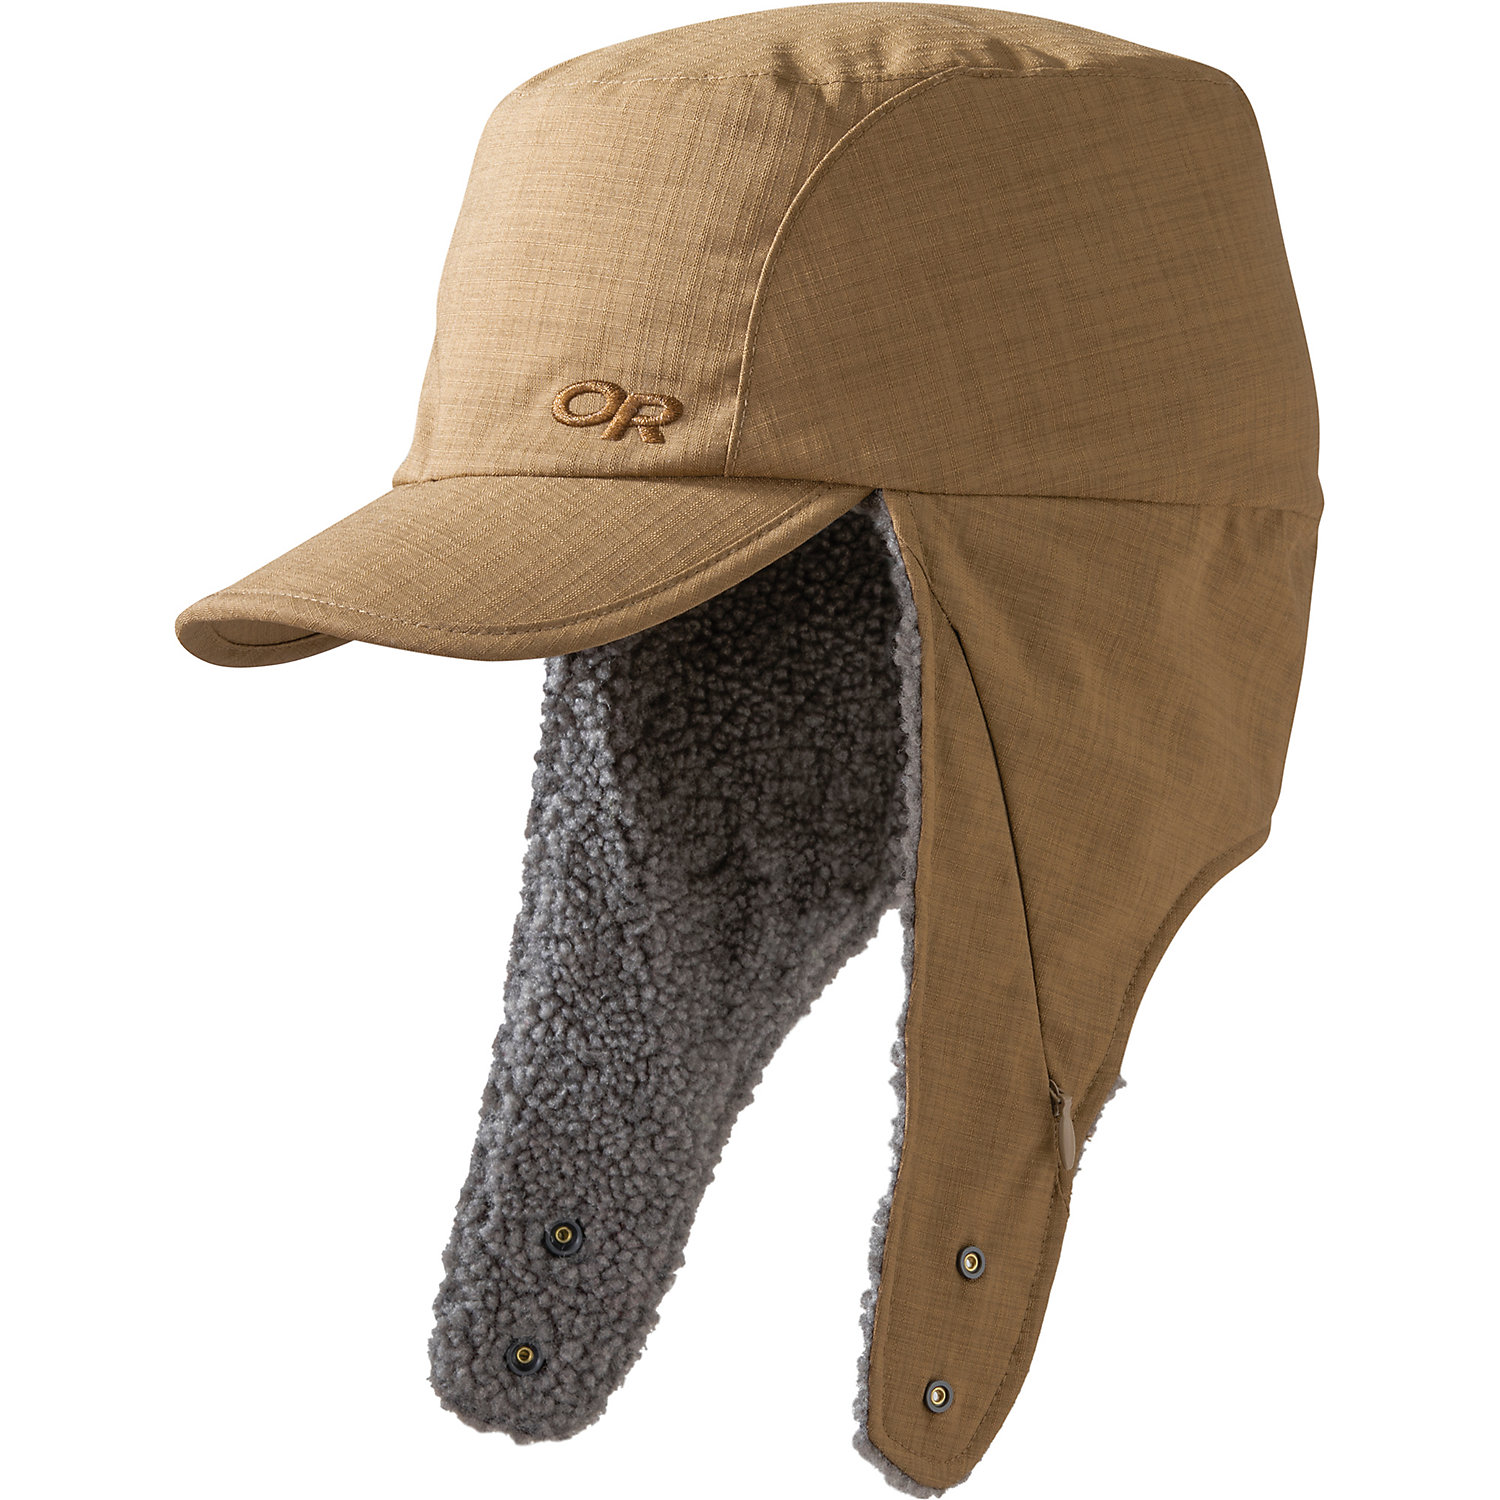 548c5e562a296 Outdoor Research Whitefish Hat - Moosejaw